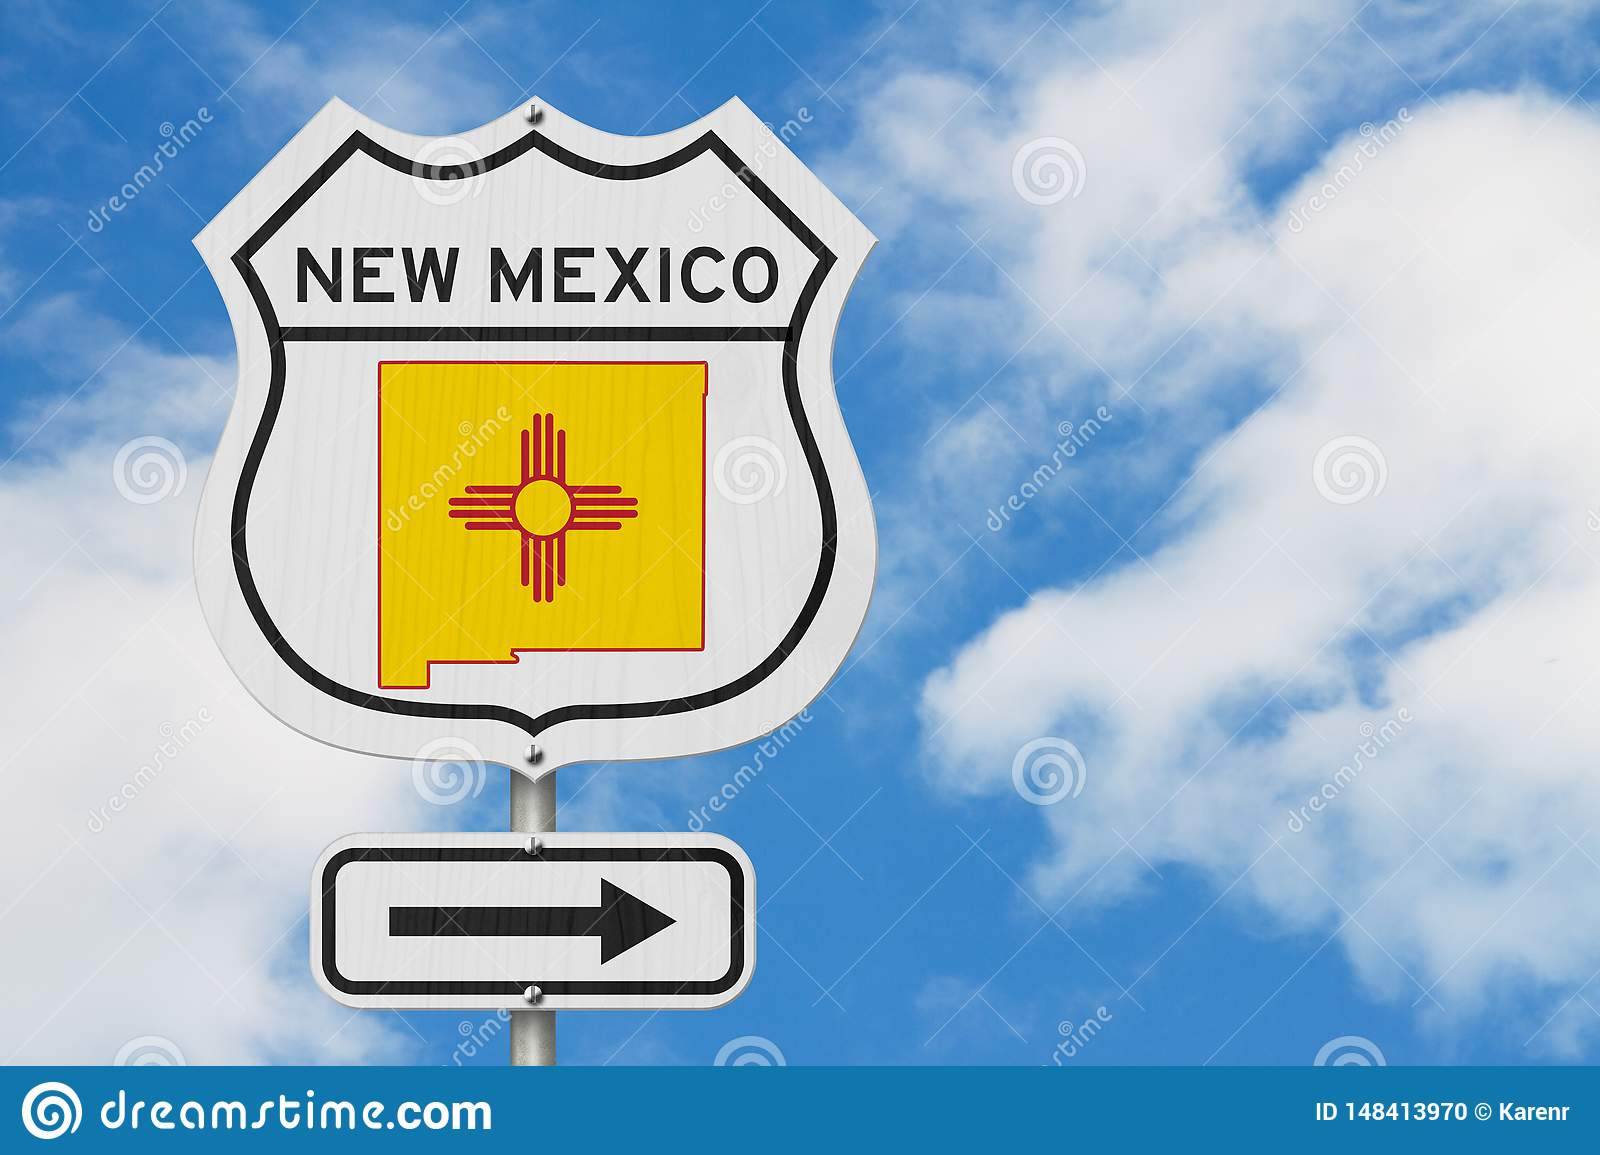 New Mexico map and state flag on a USA highway road sign